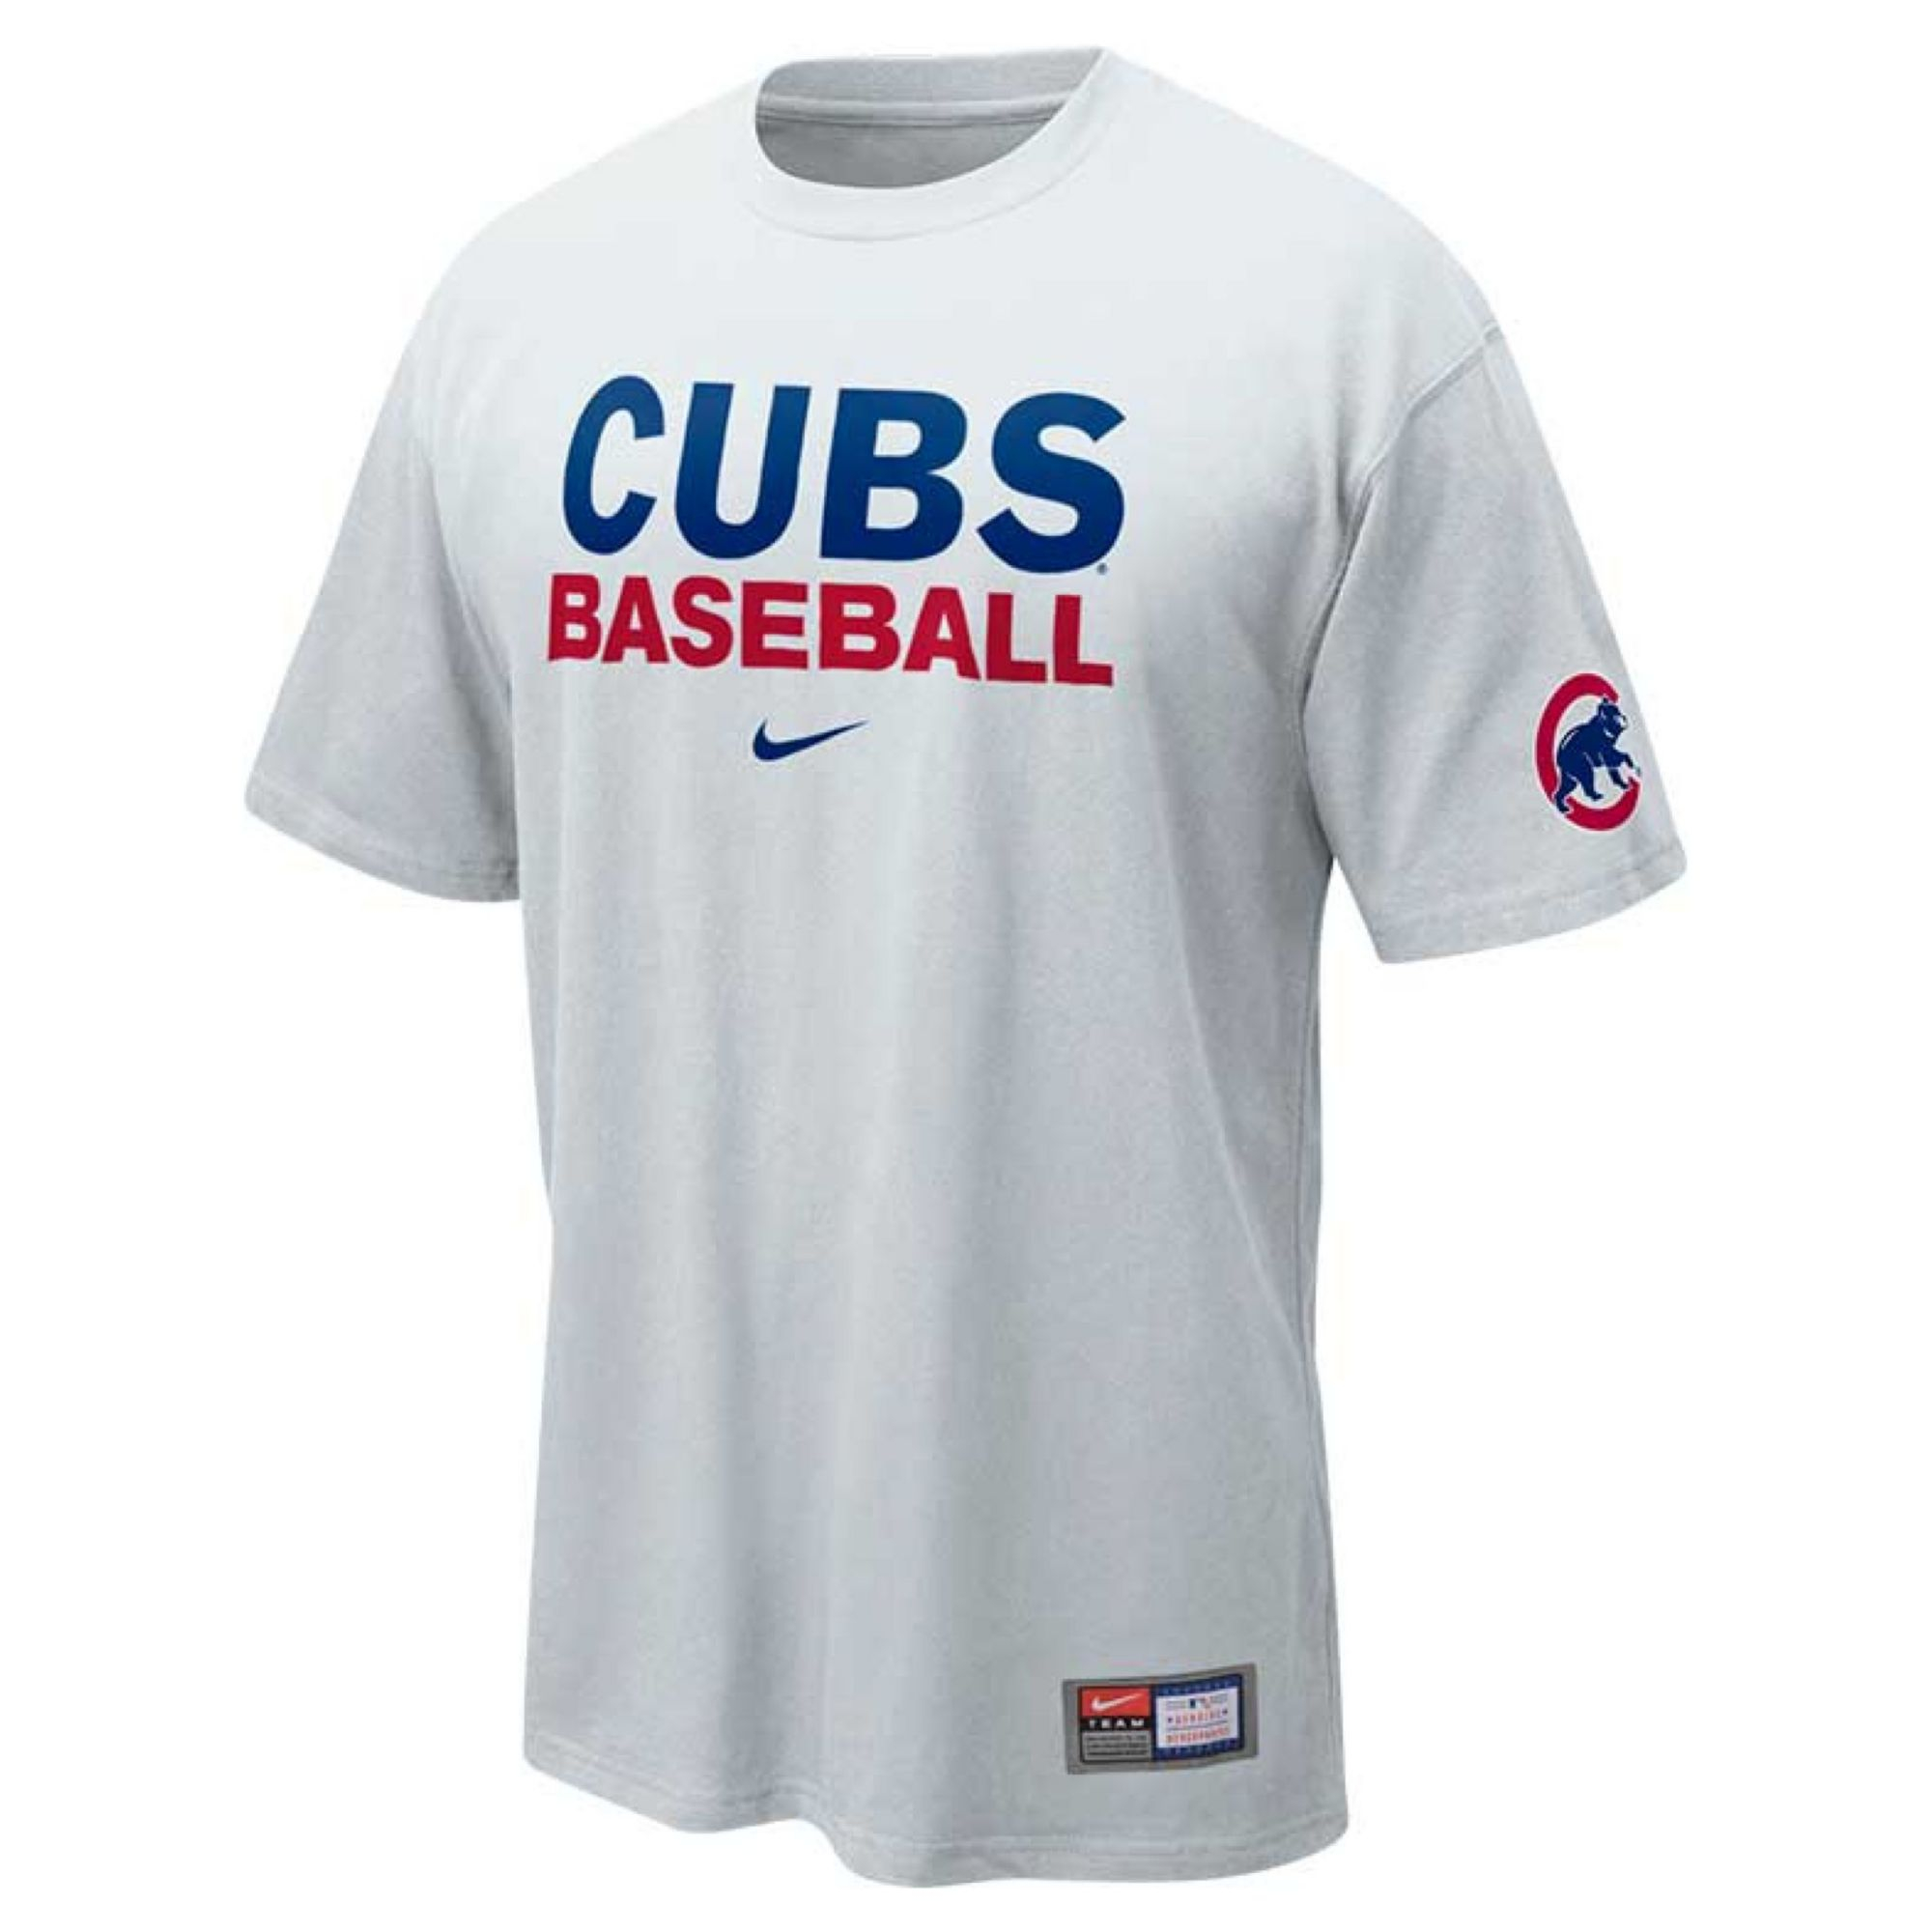 Lyst - Nike Mens Chicago Cubs Practice Ii Tshirt in White ...